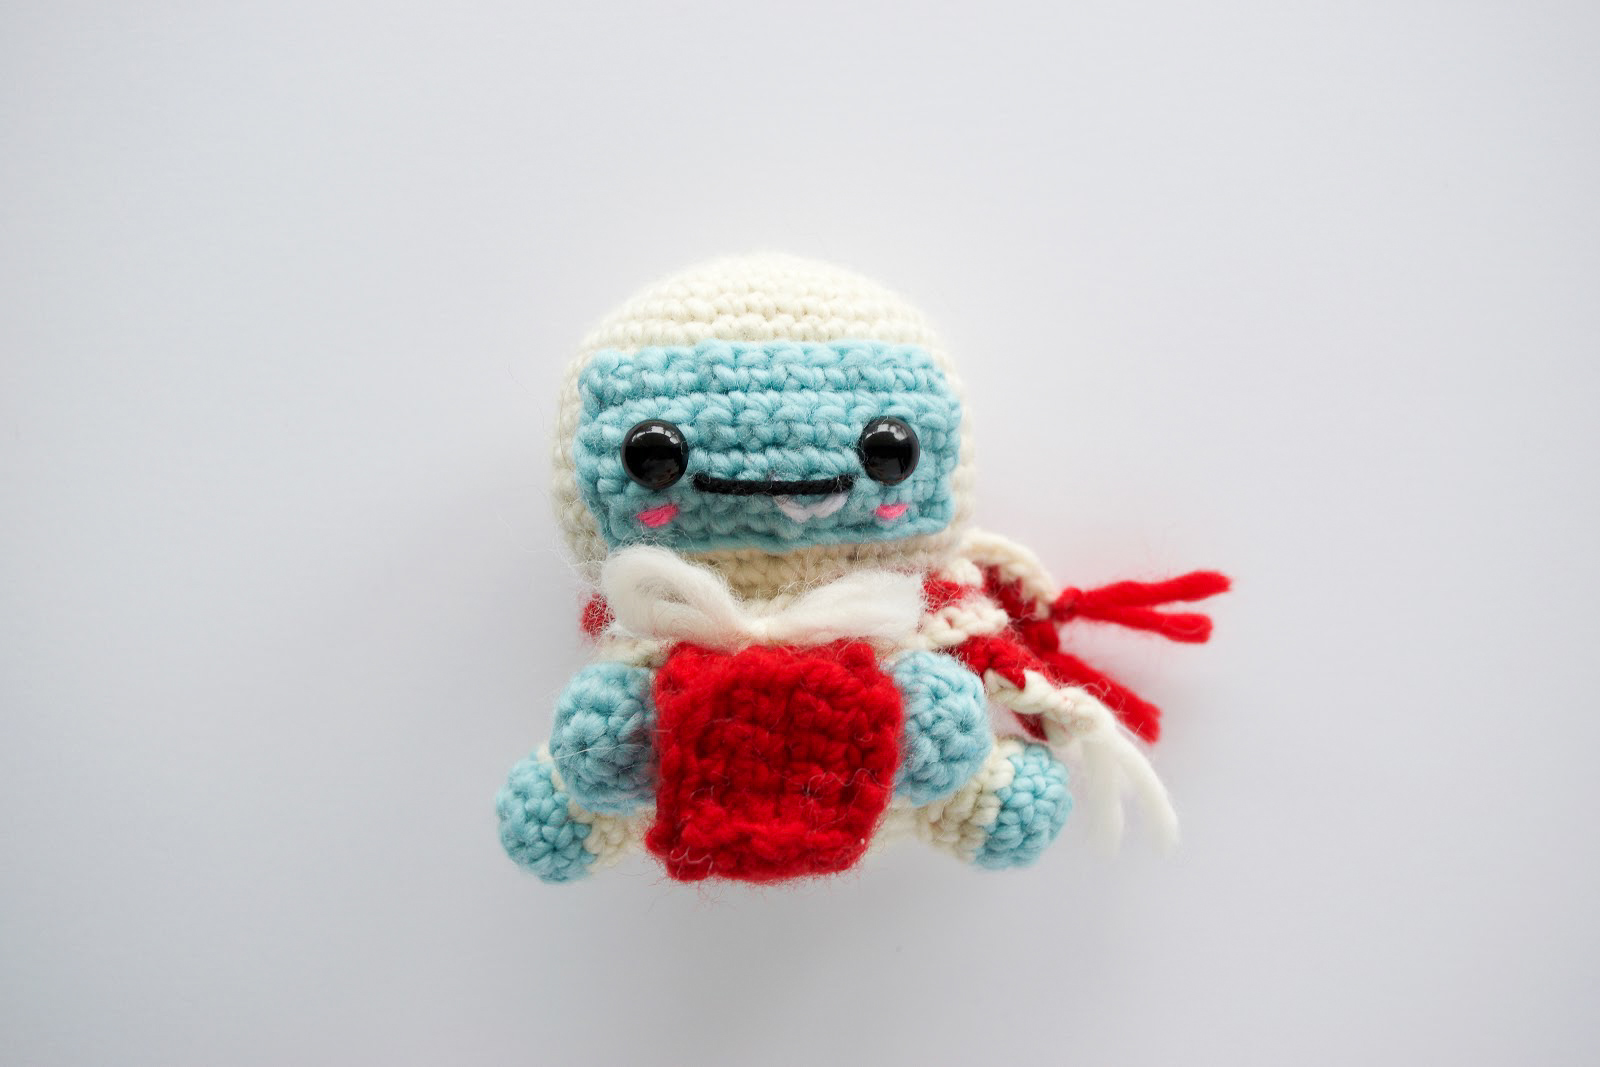 Claus the Yeti - Fill this holiday season with crochet toy projects that will fill your home with more joy than ever before. #crochettoys #christmastoys #crochetamigurumi